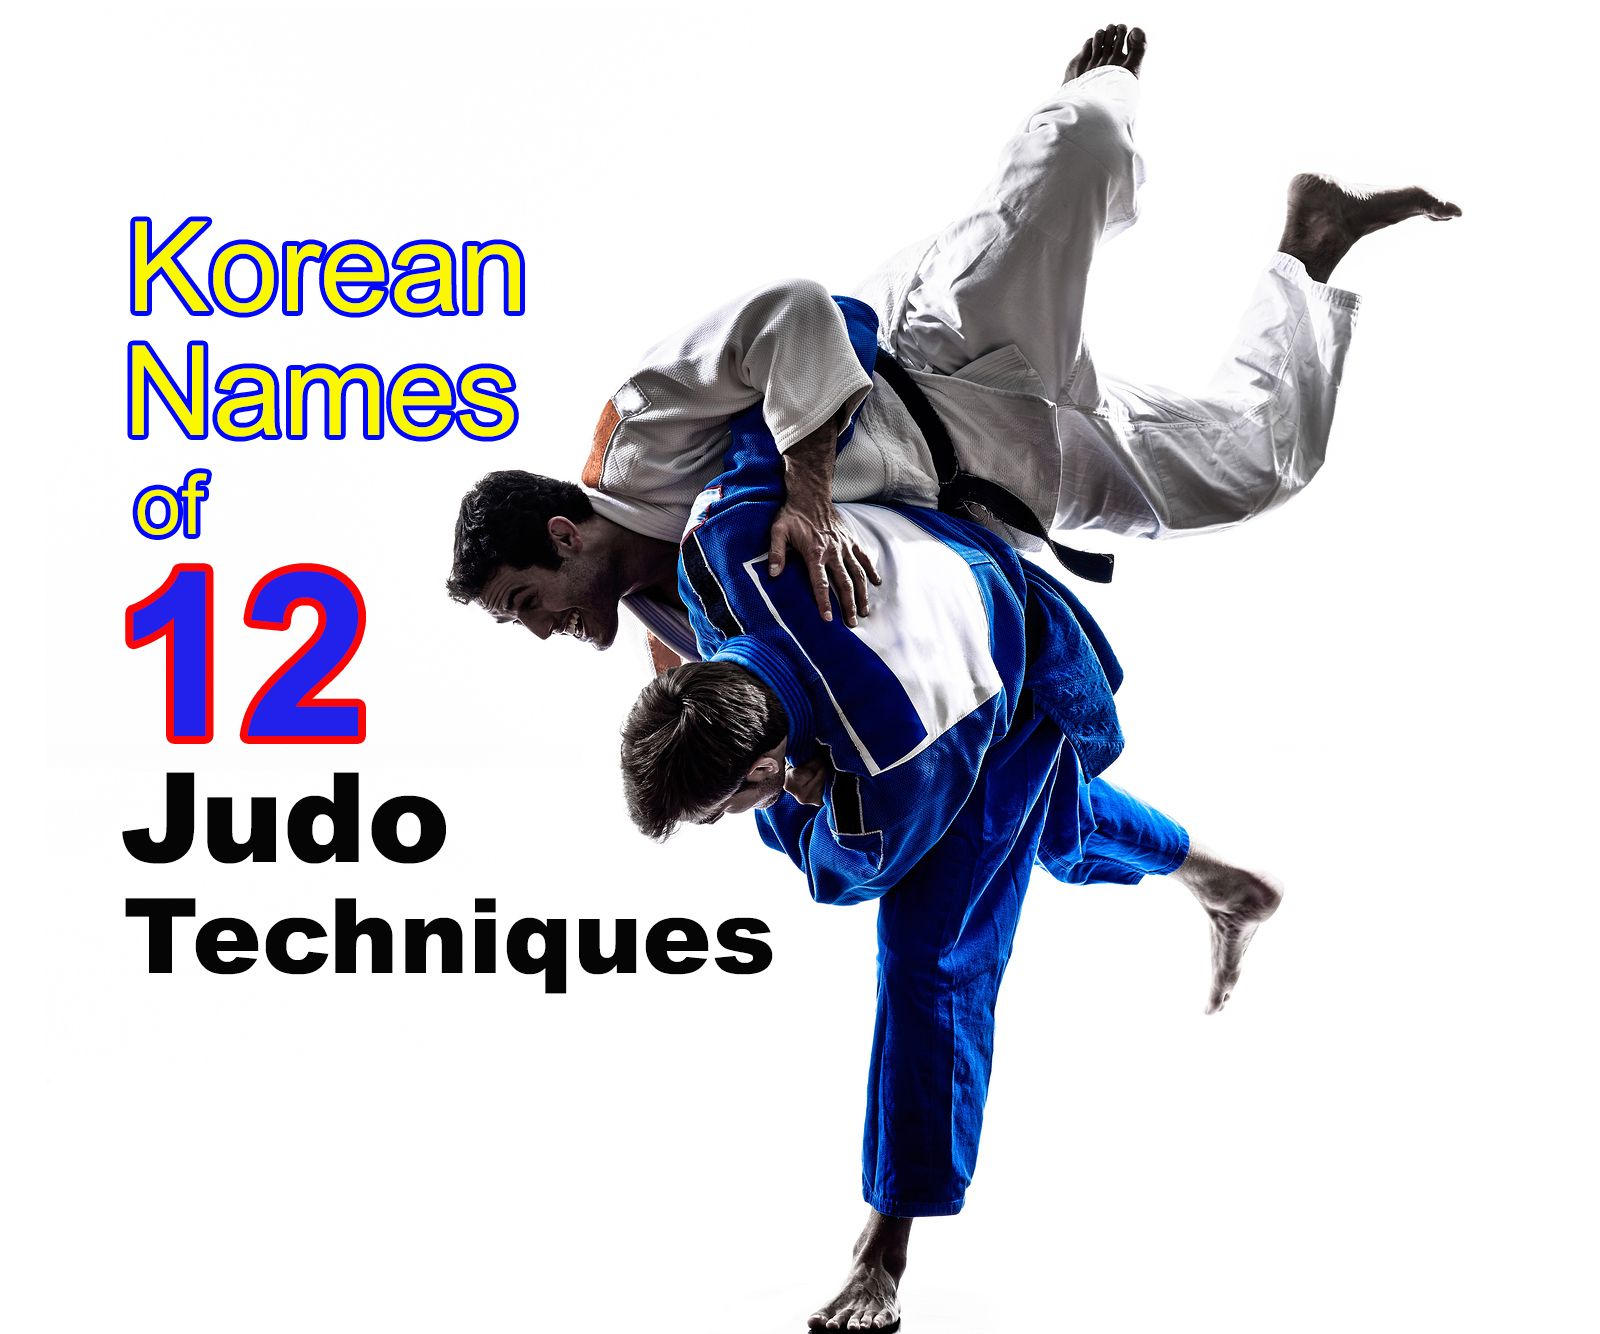 Judo Techniques In Korean Hangul Is Aligned With The Core